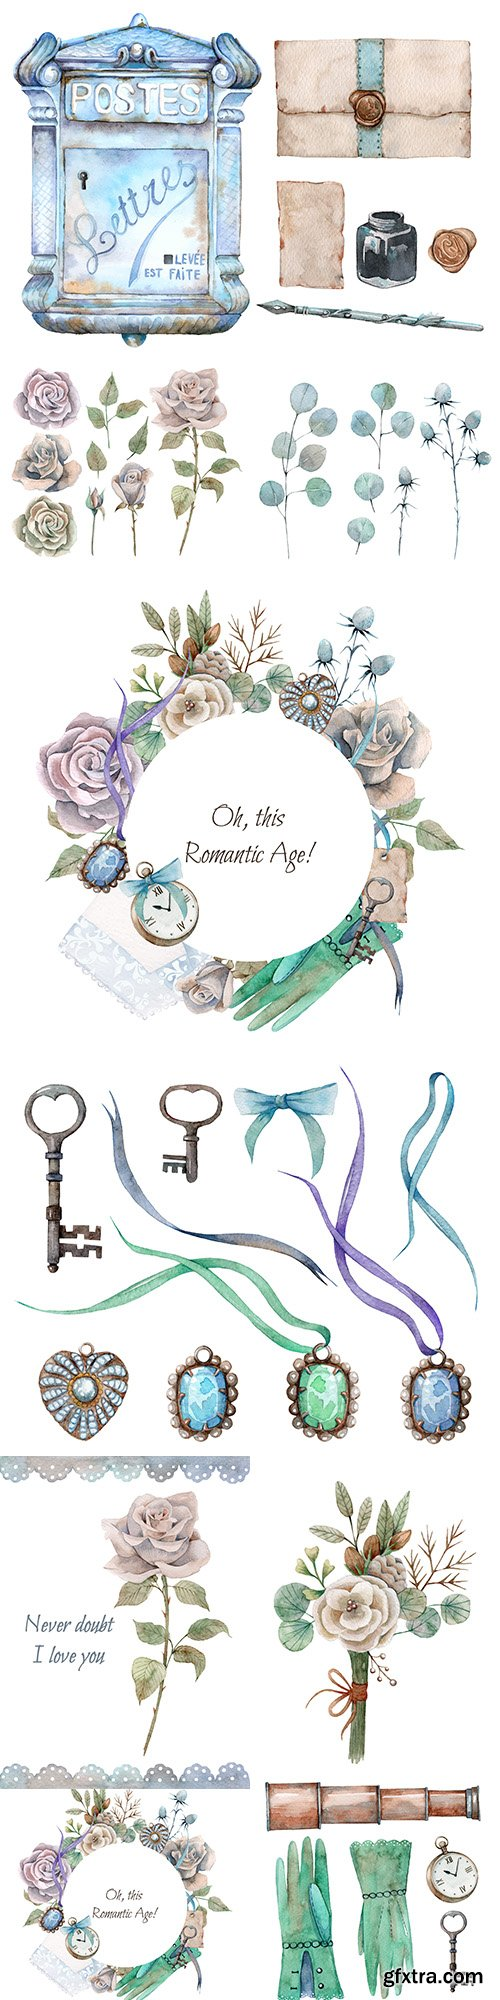 Flowers, decorations and ancient keys watercolor design